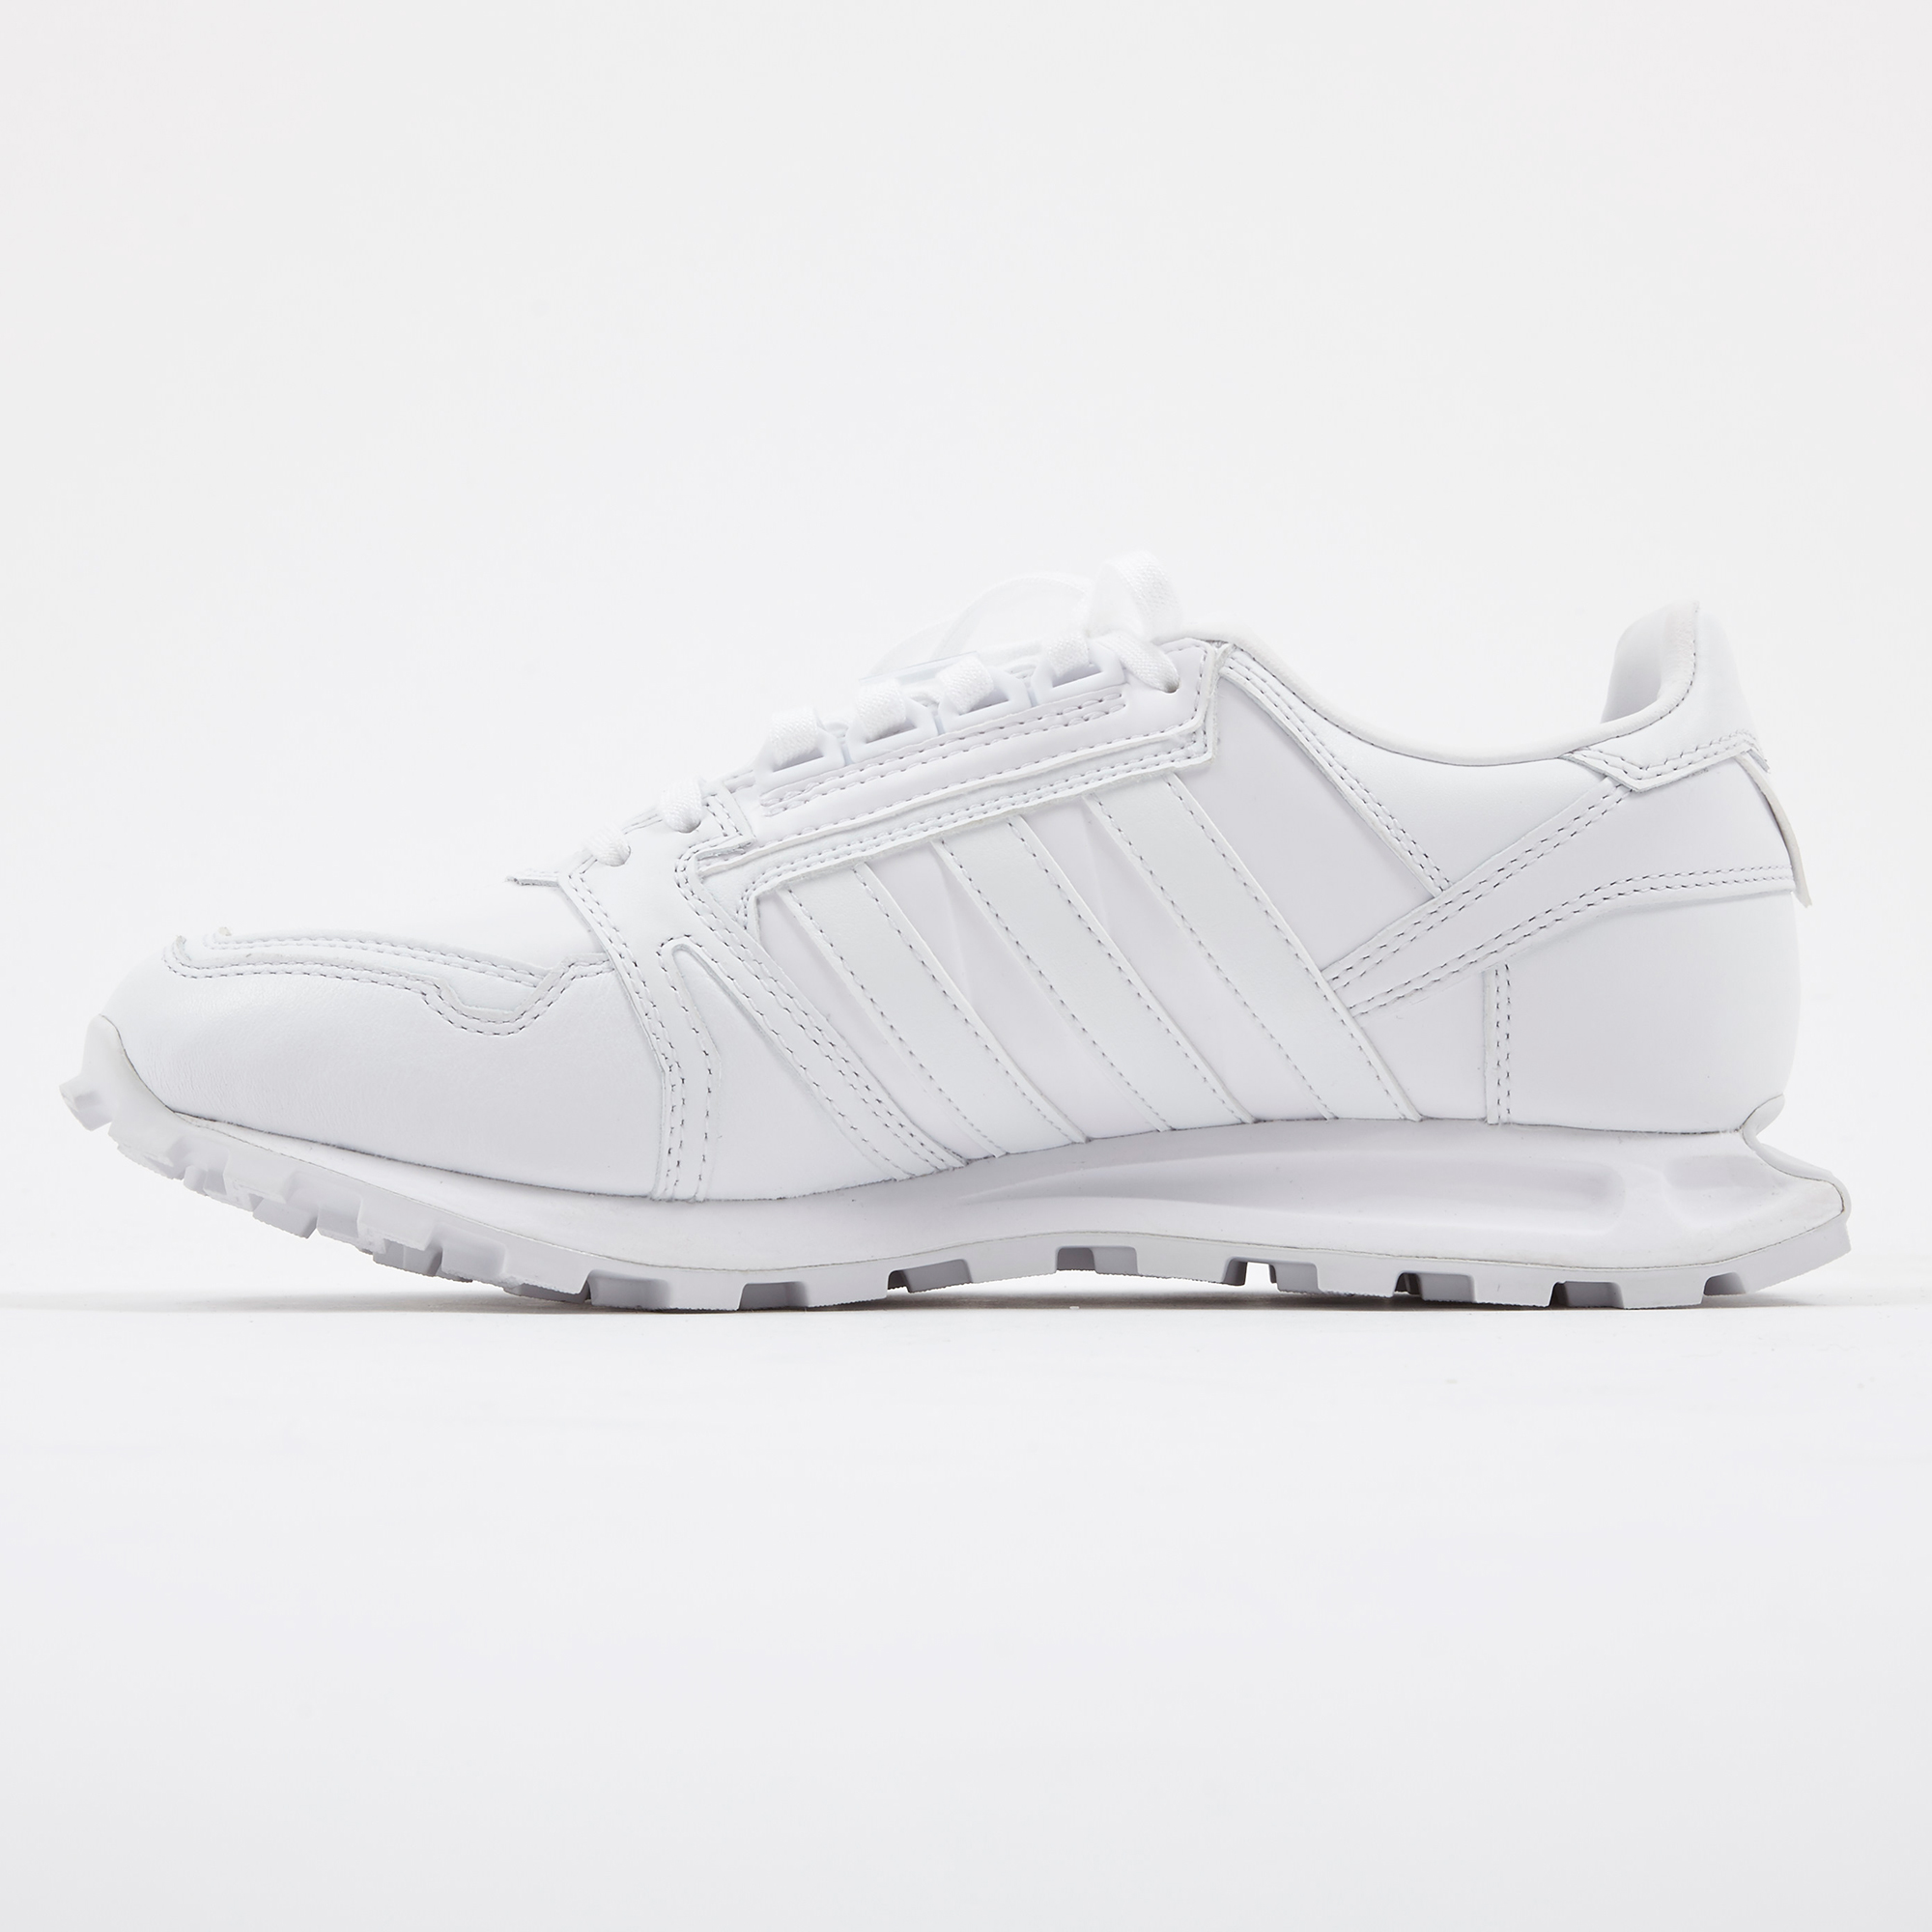 Adidas x white alpinismo racing 1 bianco / bianco